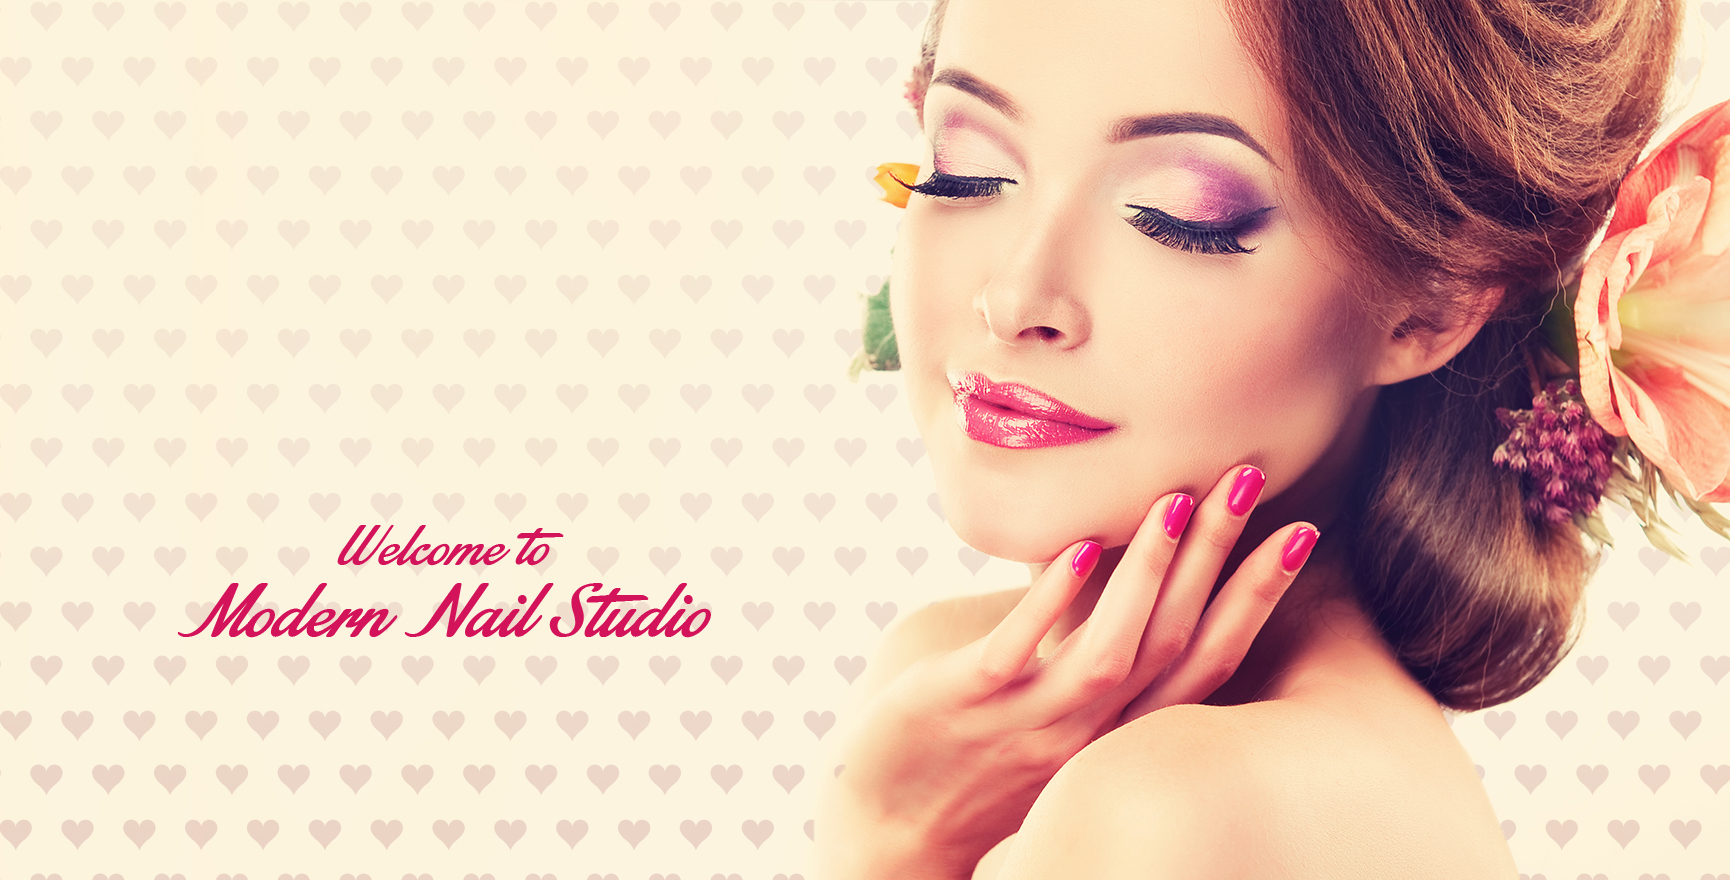 Welcome To Modern Nail Studio